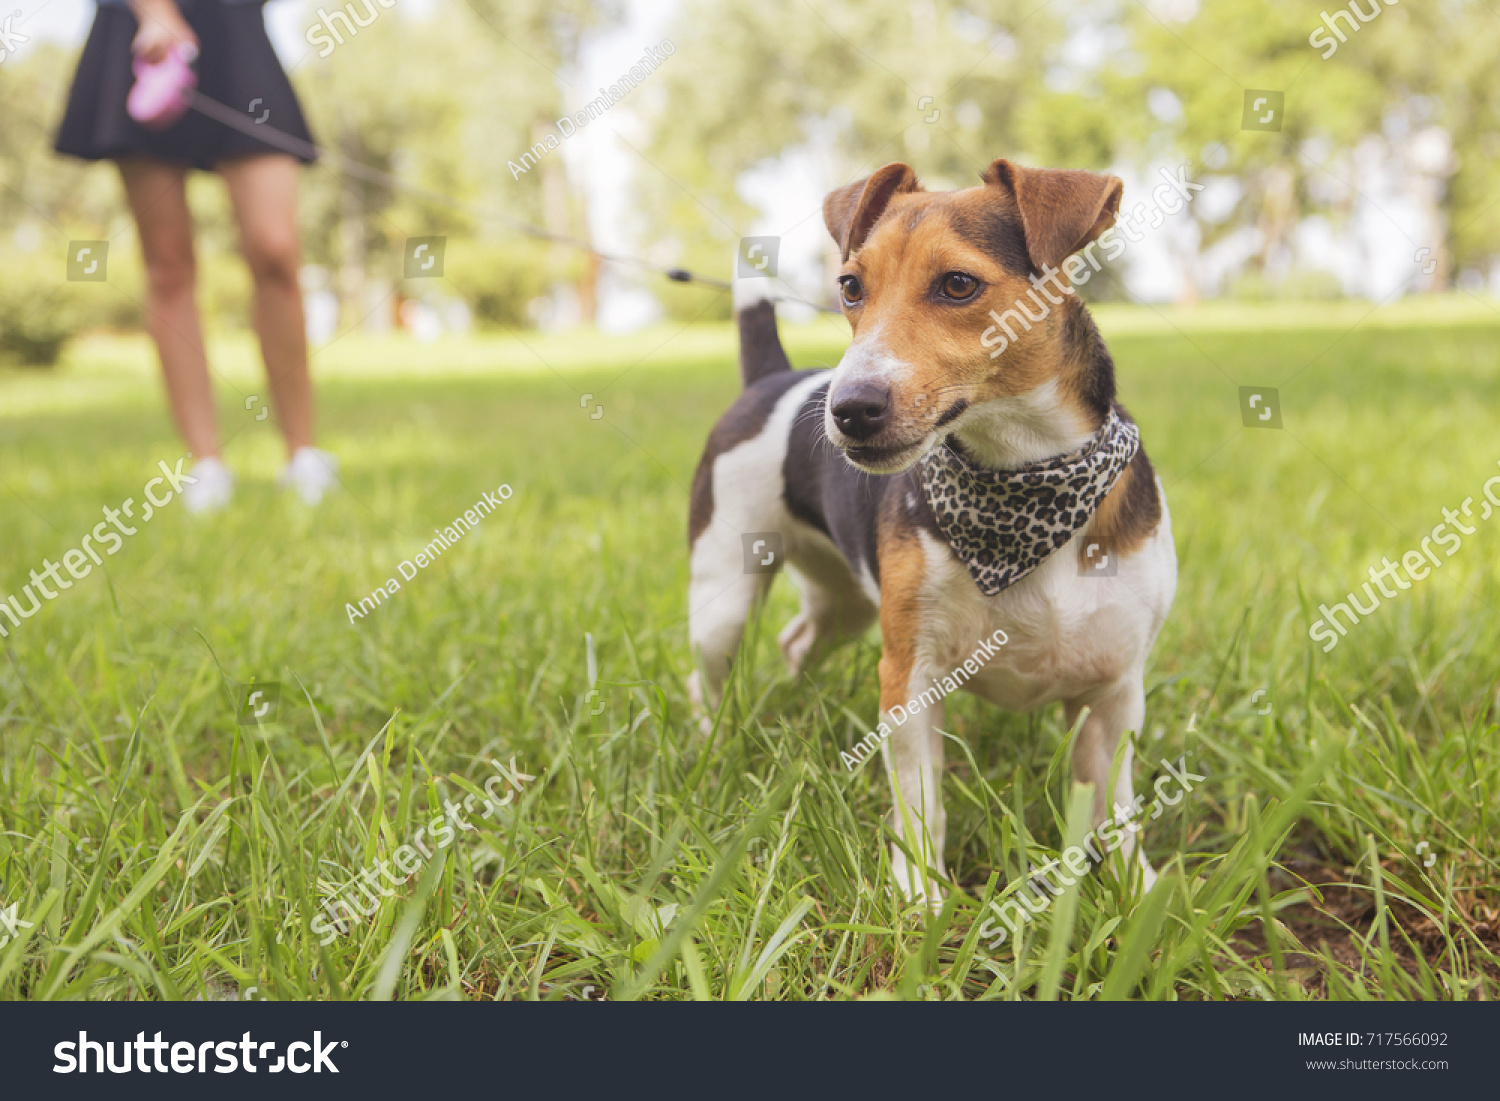 Cute beautiful slim caucasian brunette woman in casual outfit (skirt, shirt and jeans jacket) on a walk in park in summer day with her adorable jack russell dog. They full of joy, smiling and have fun #717566092